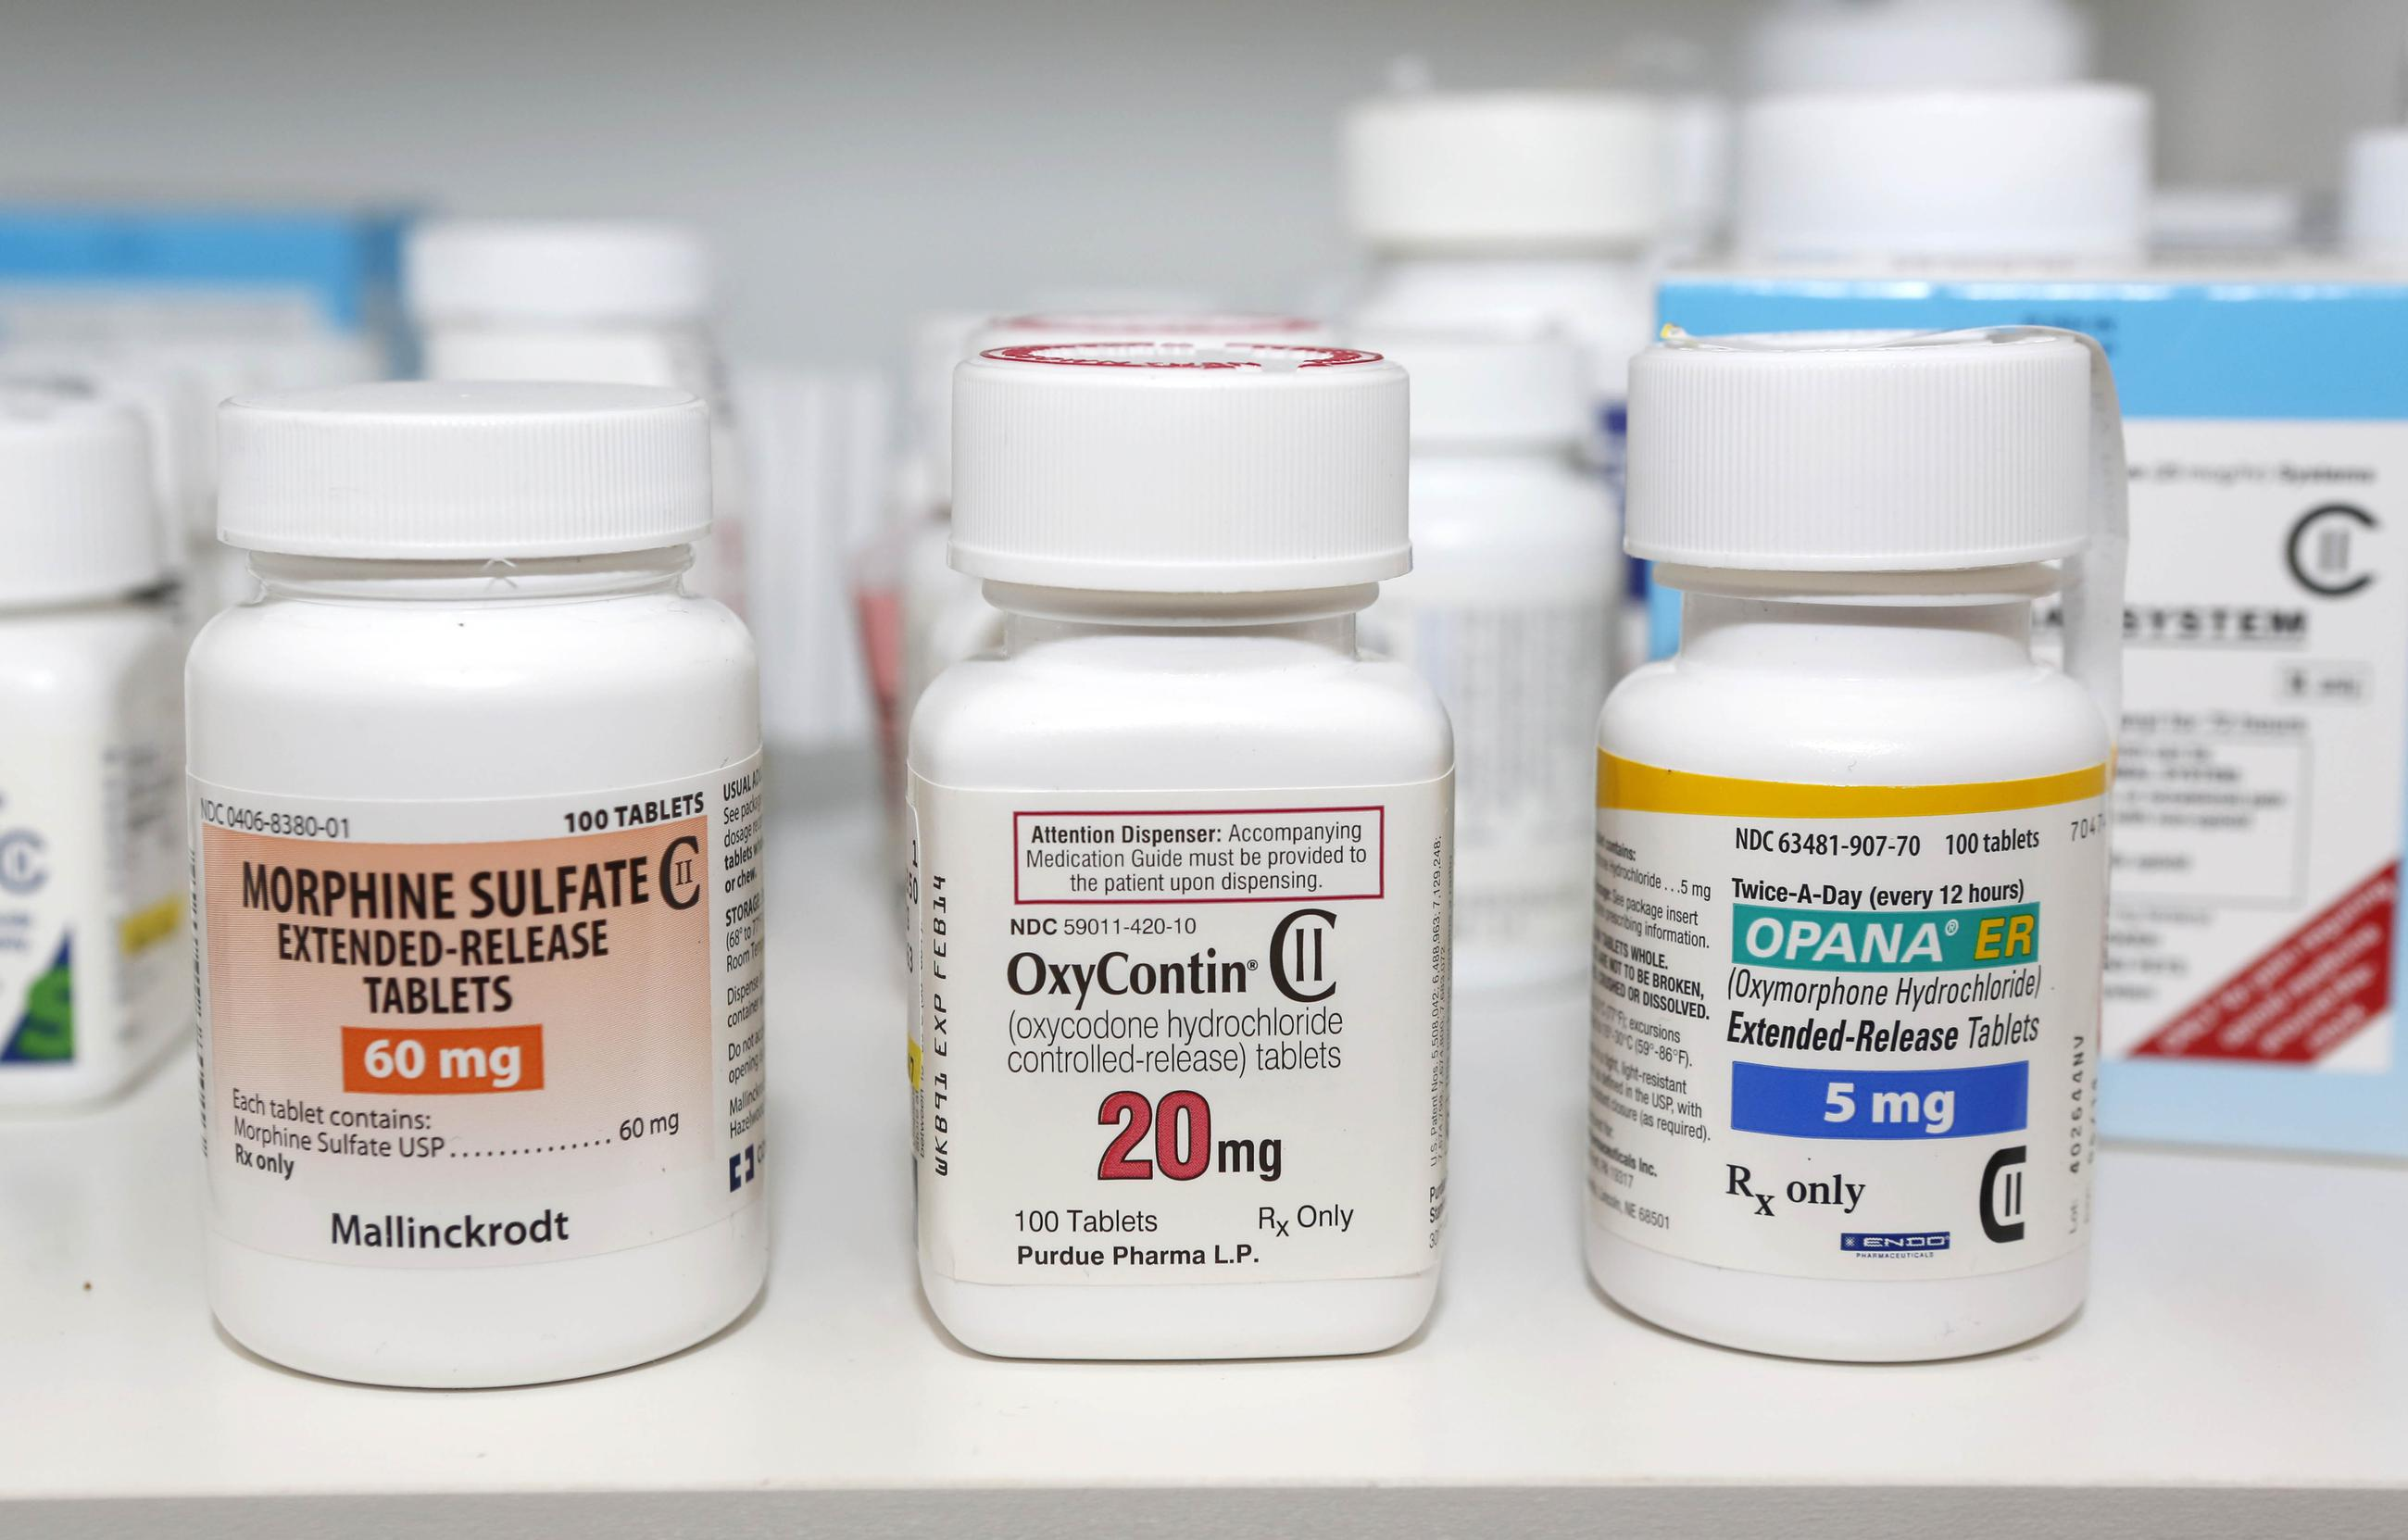 Medical Lobby Jumps Into Debate Over Fighting Opioid Abuse